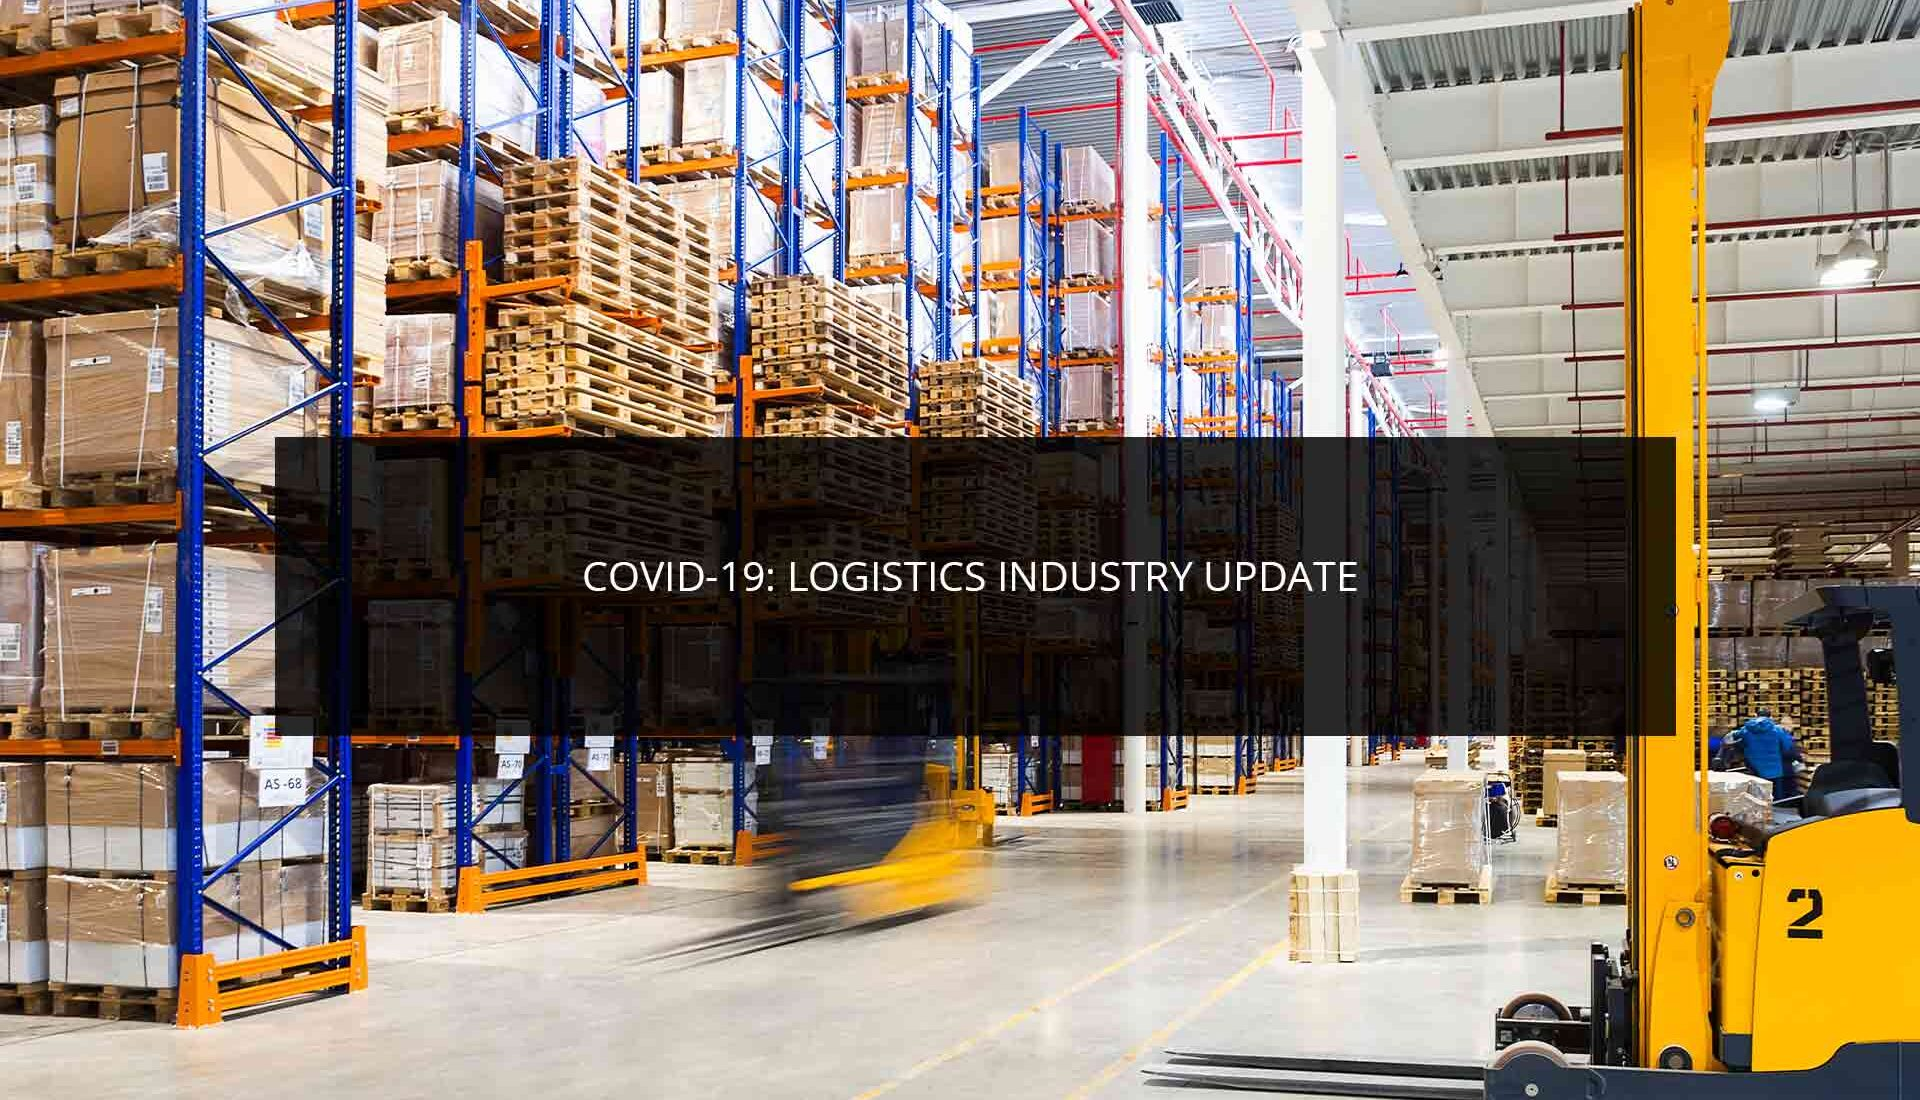 COVID-19: Logistics Industry Update